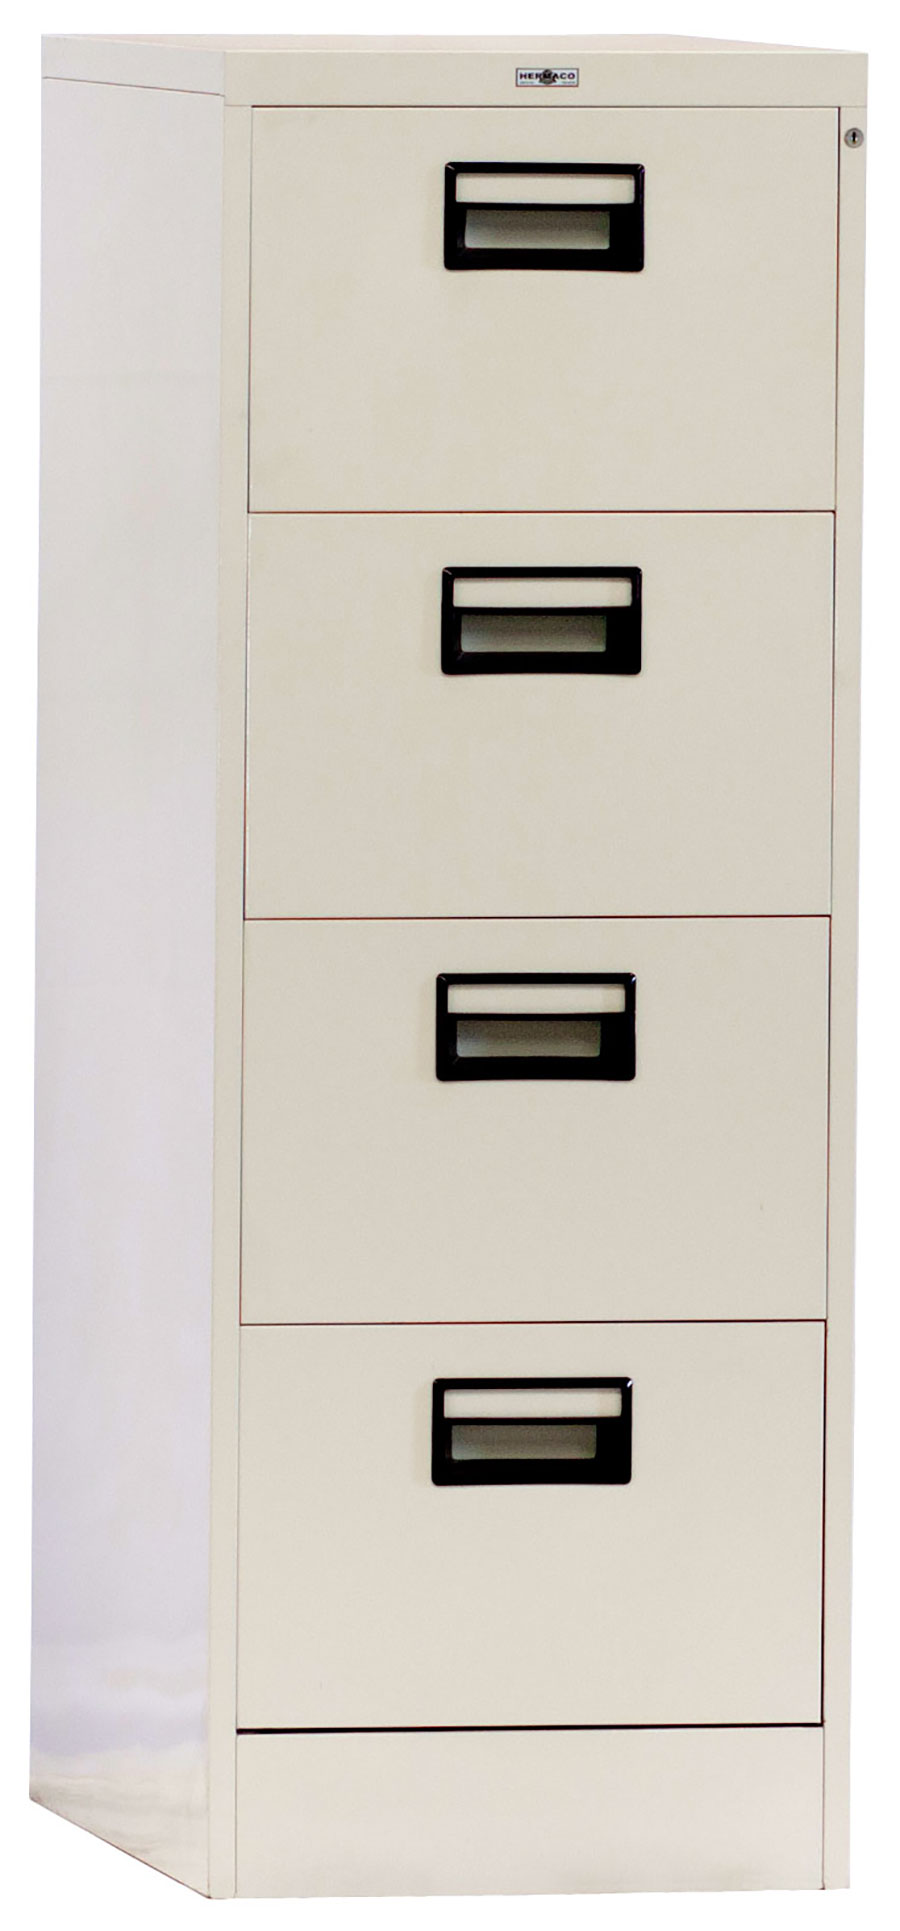 How Can I Open a Locked File Cabinet with pictures